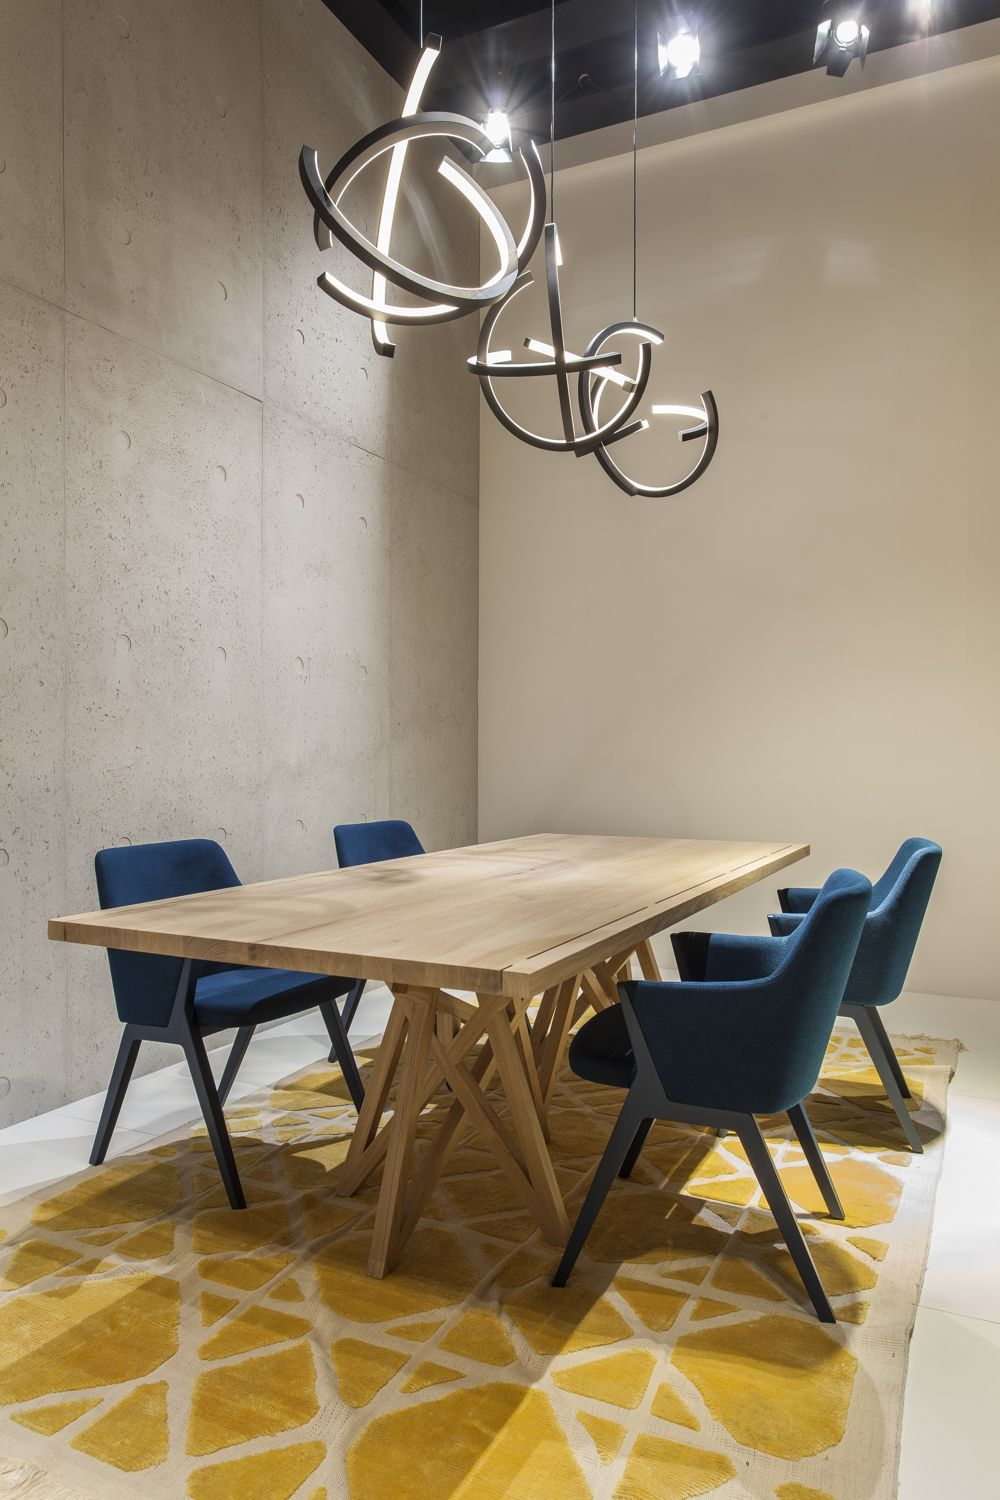 roche bobois at the imm cologne fair | saga dining table designed